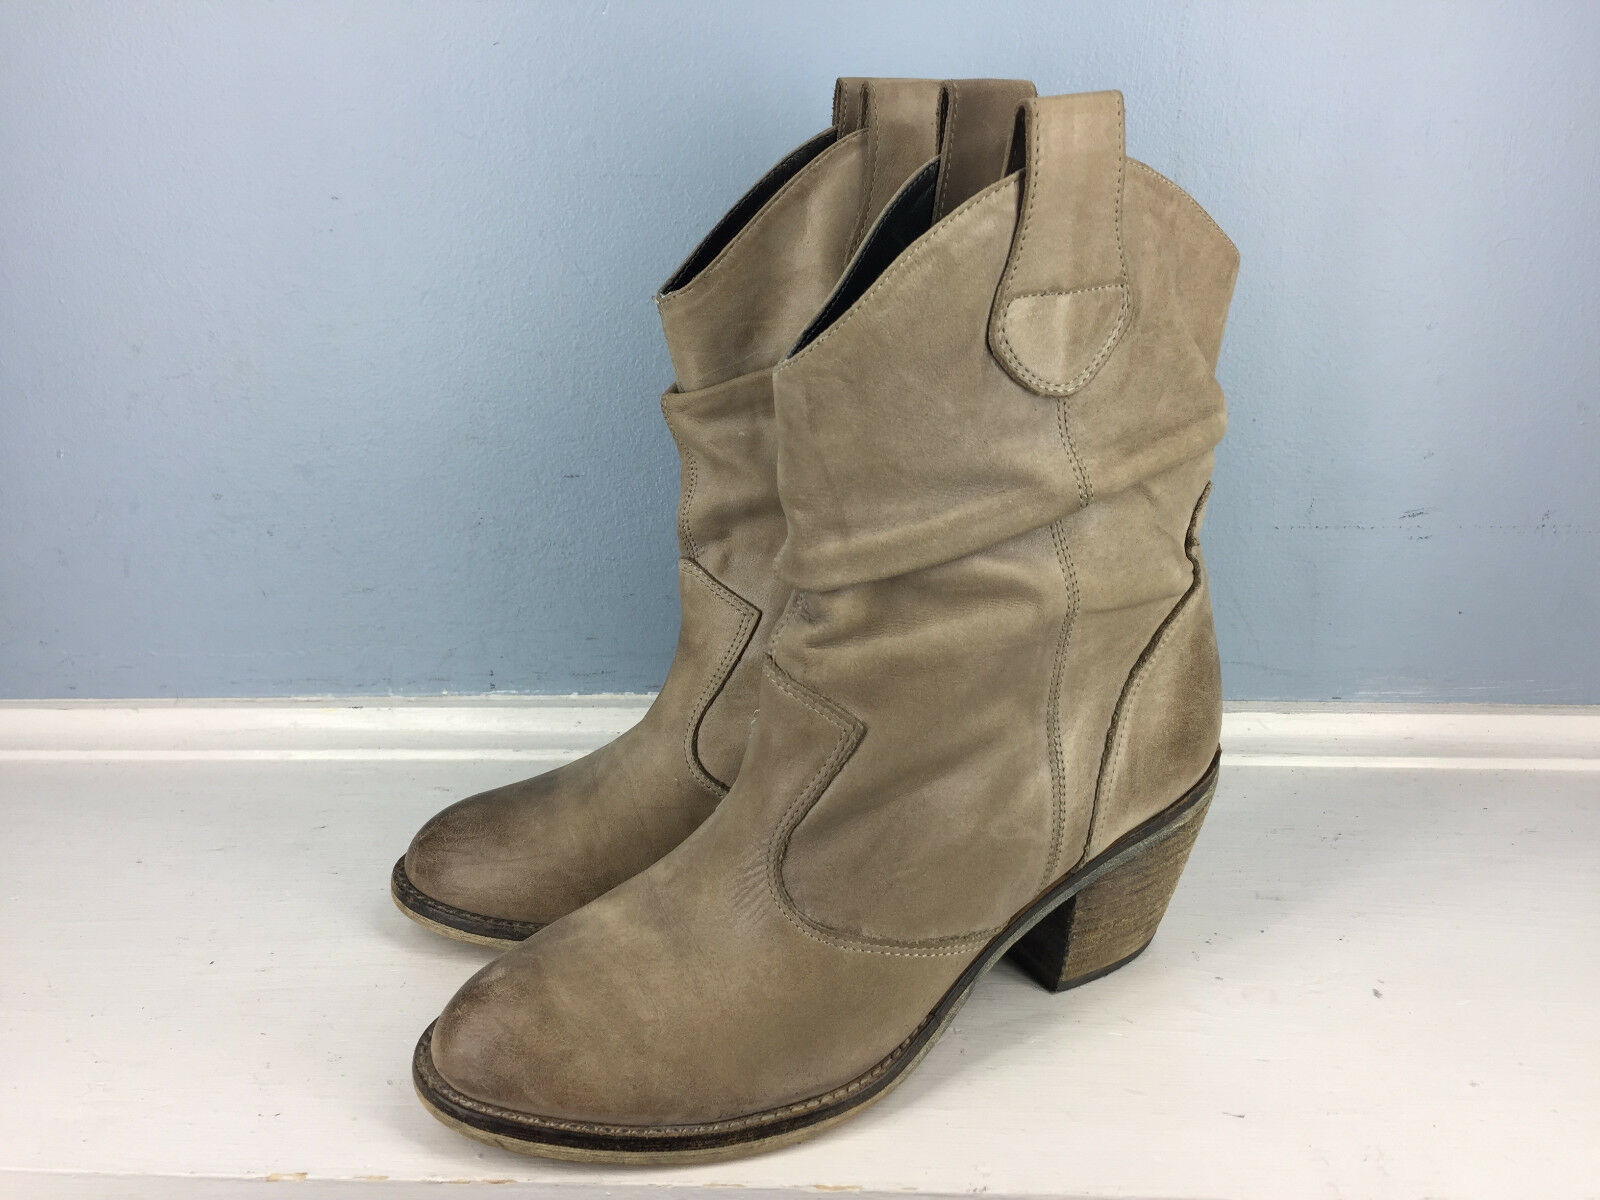 ALDO Tan Brown Leather Ankle Boots 38 7 Excellent Career Casual Scrunch pull on